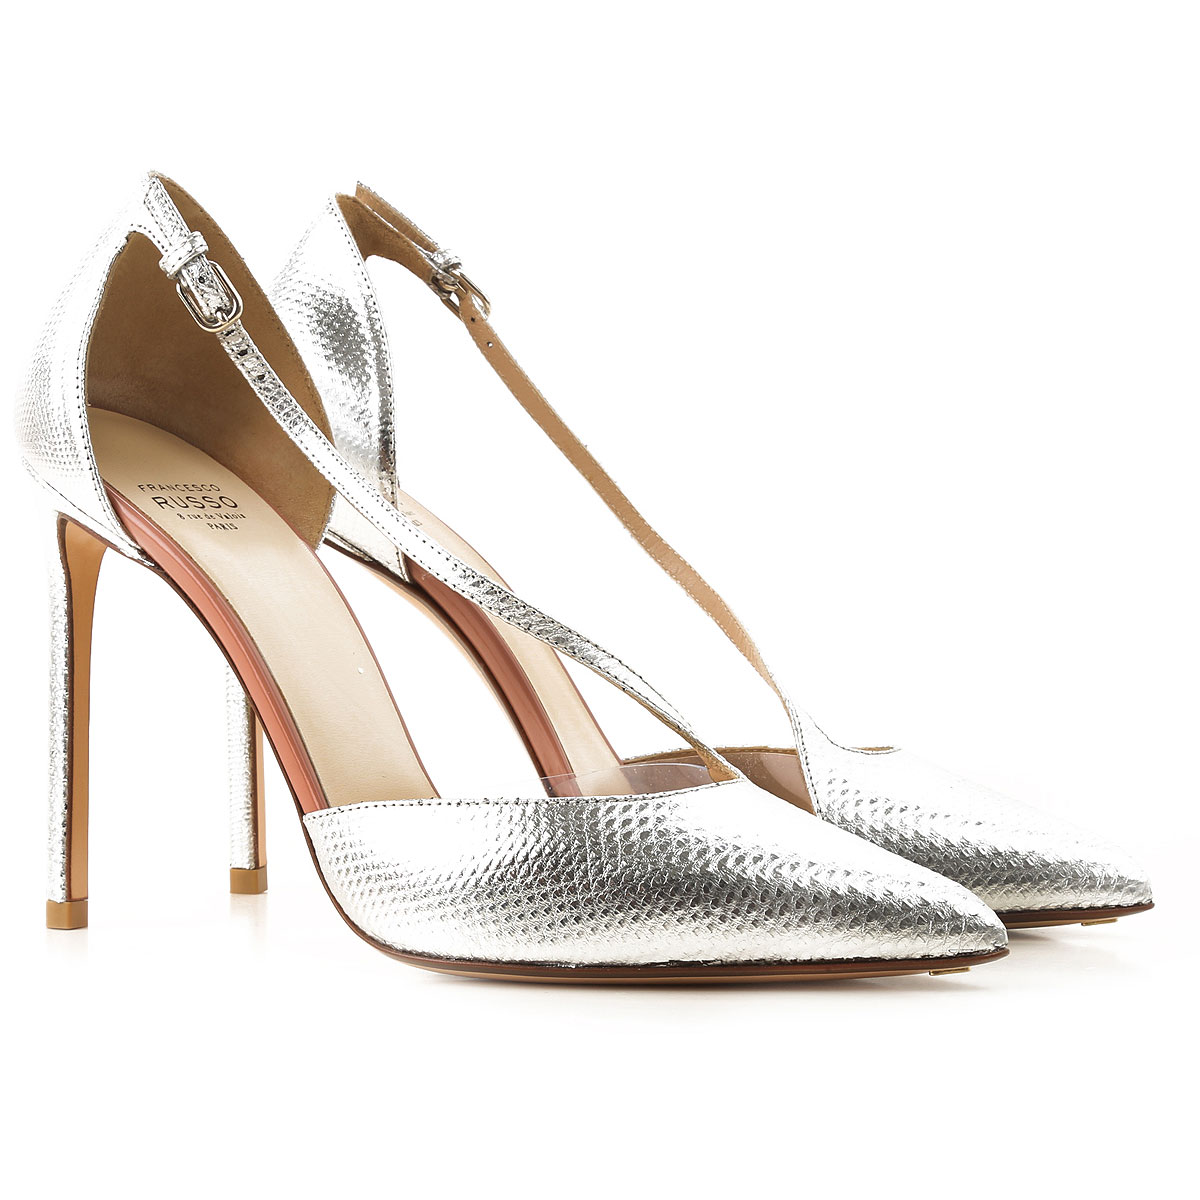 Francesco Russo Pumps & High Heels for Women On Sale in Outlet, Silver, Leather, 2019, 10 6 8.5 9